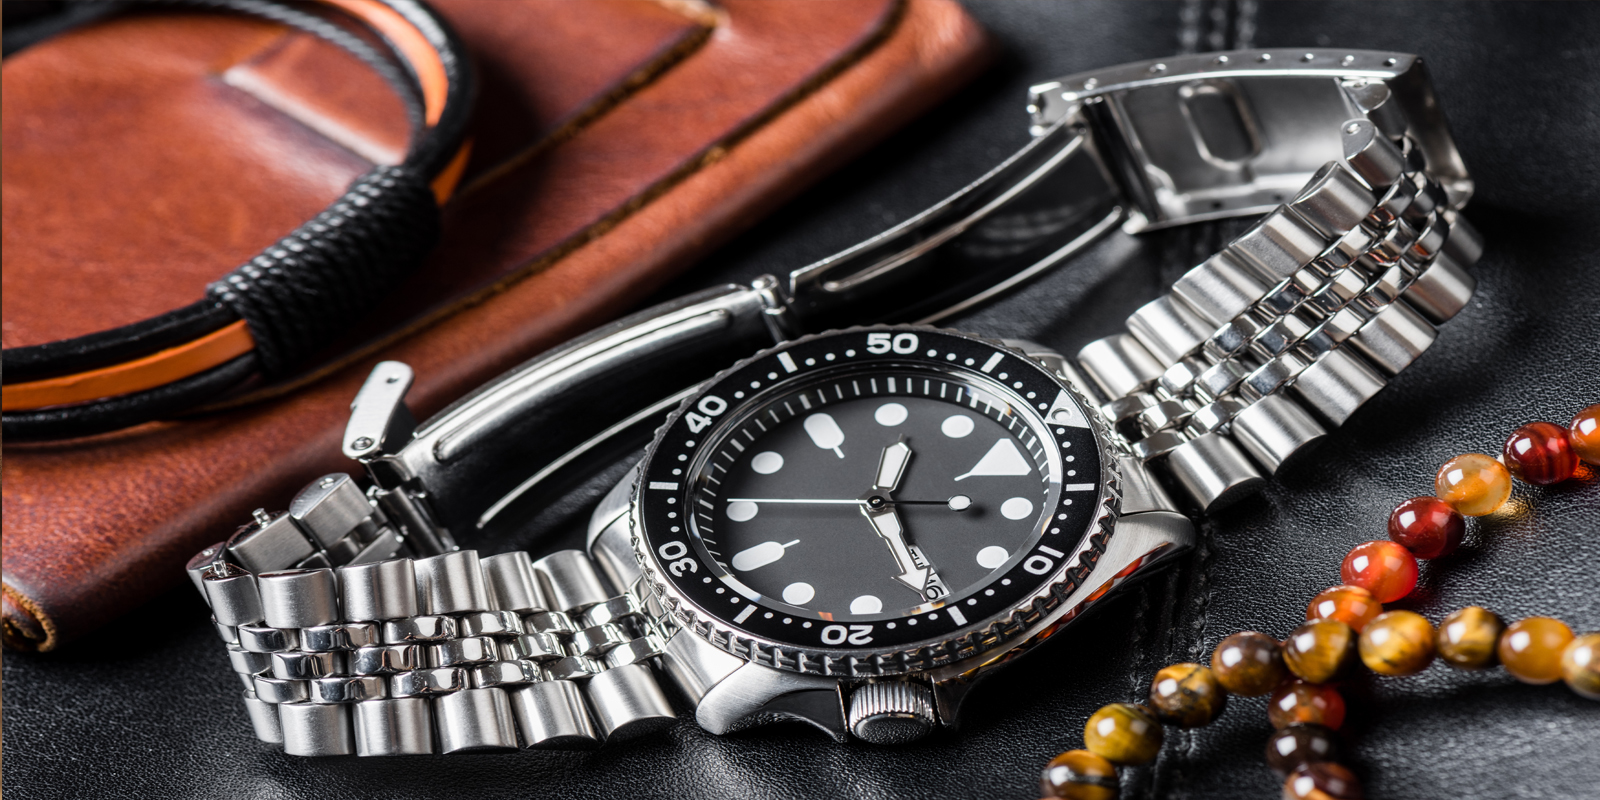 High Quality Metal Watch Bands | The Watch Prince